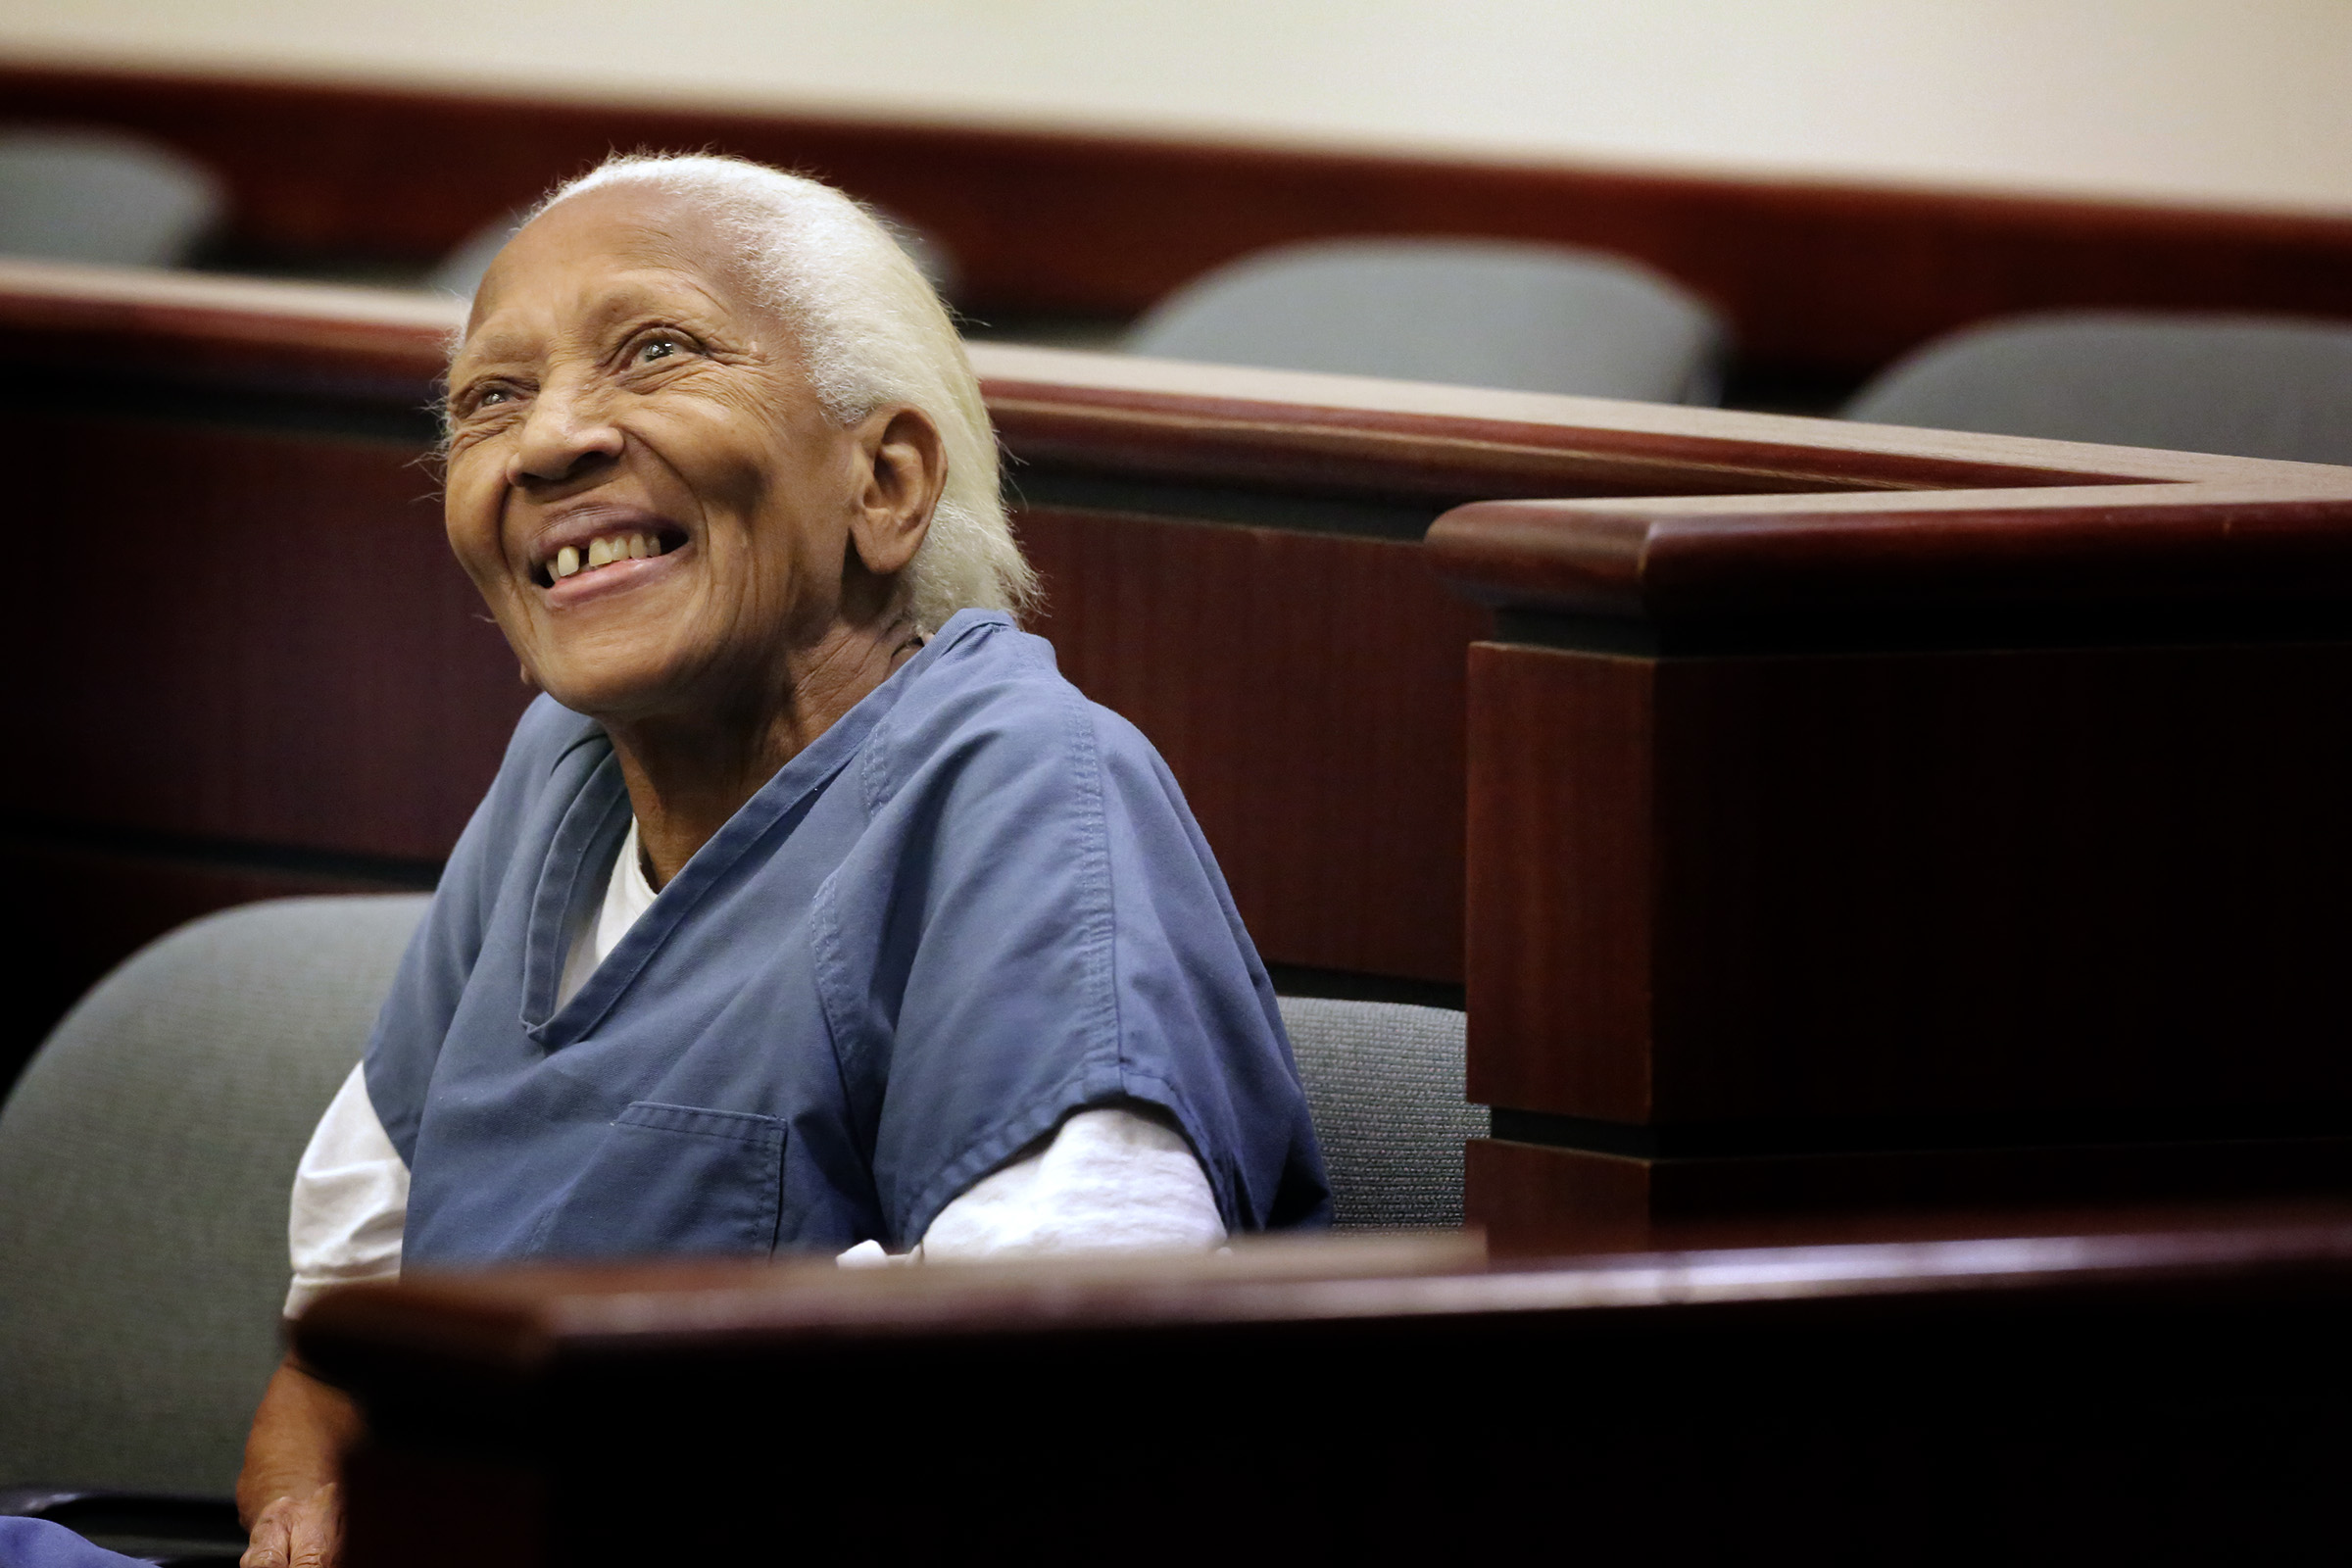 Doris Marie Payne, 83, at flanked by defense attorneys Gretchen Christina von Helms and Guadalupe Valencia at arraignment in Indio court on November, 05, 2013.